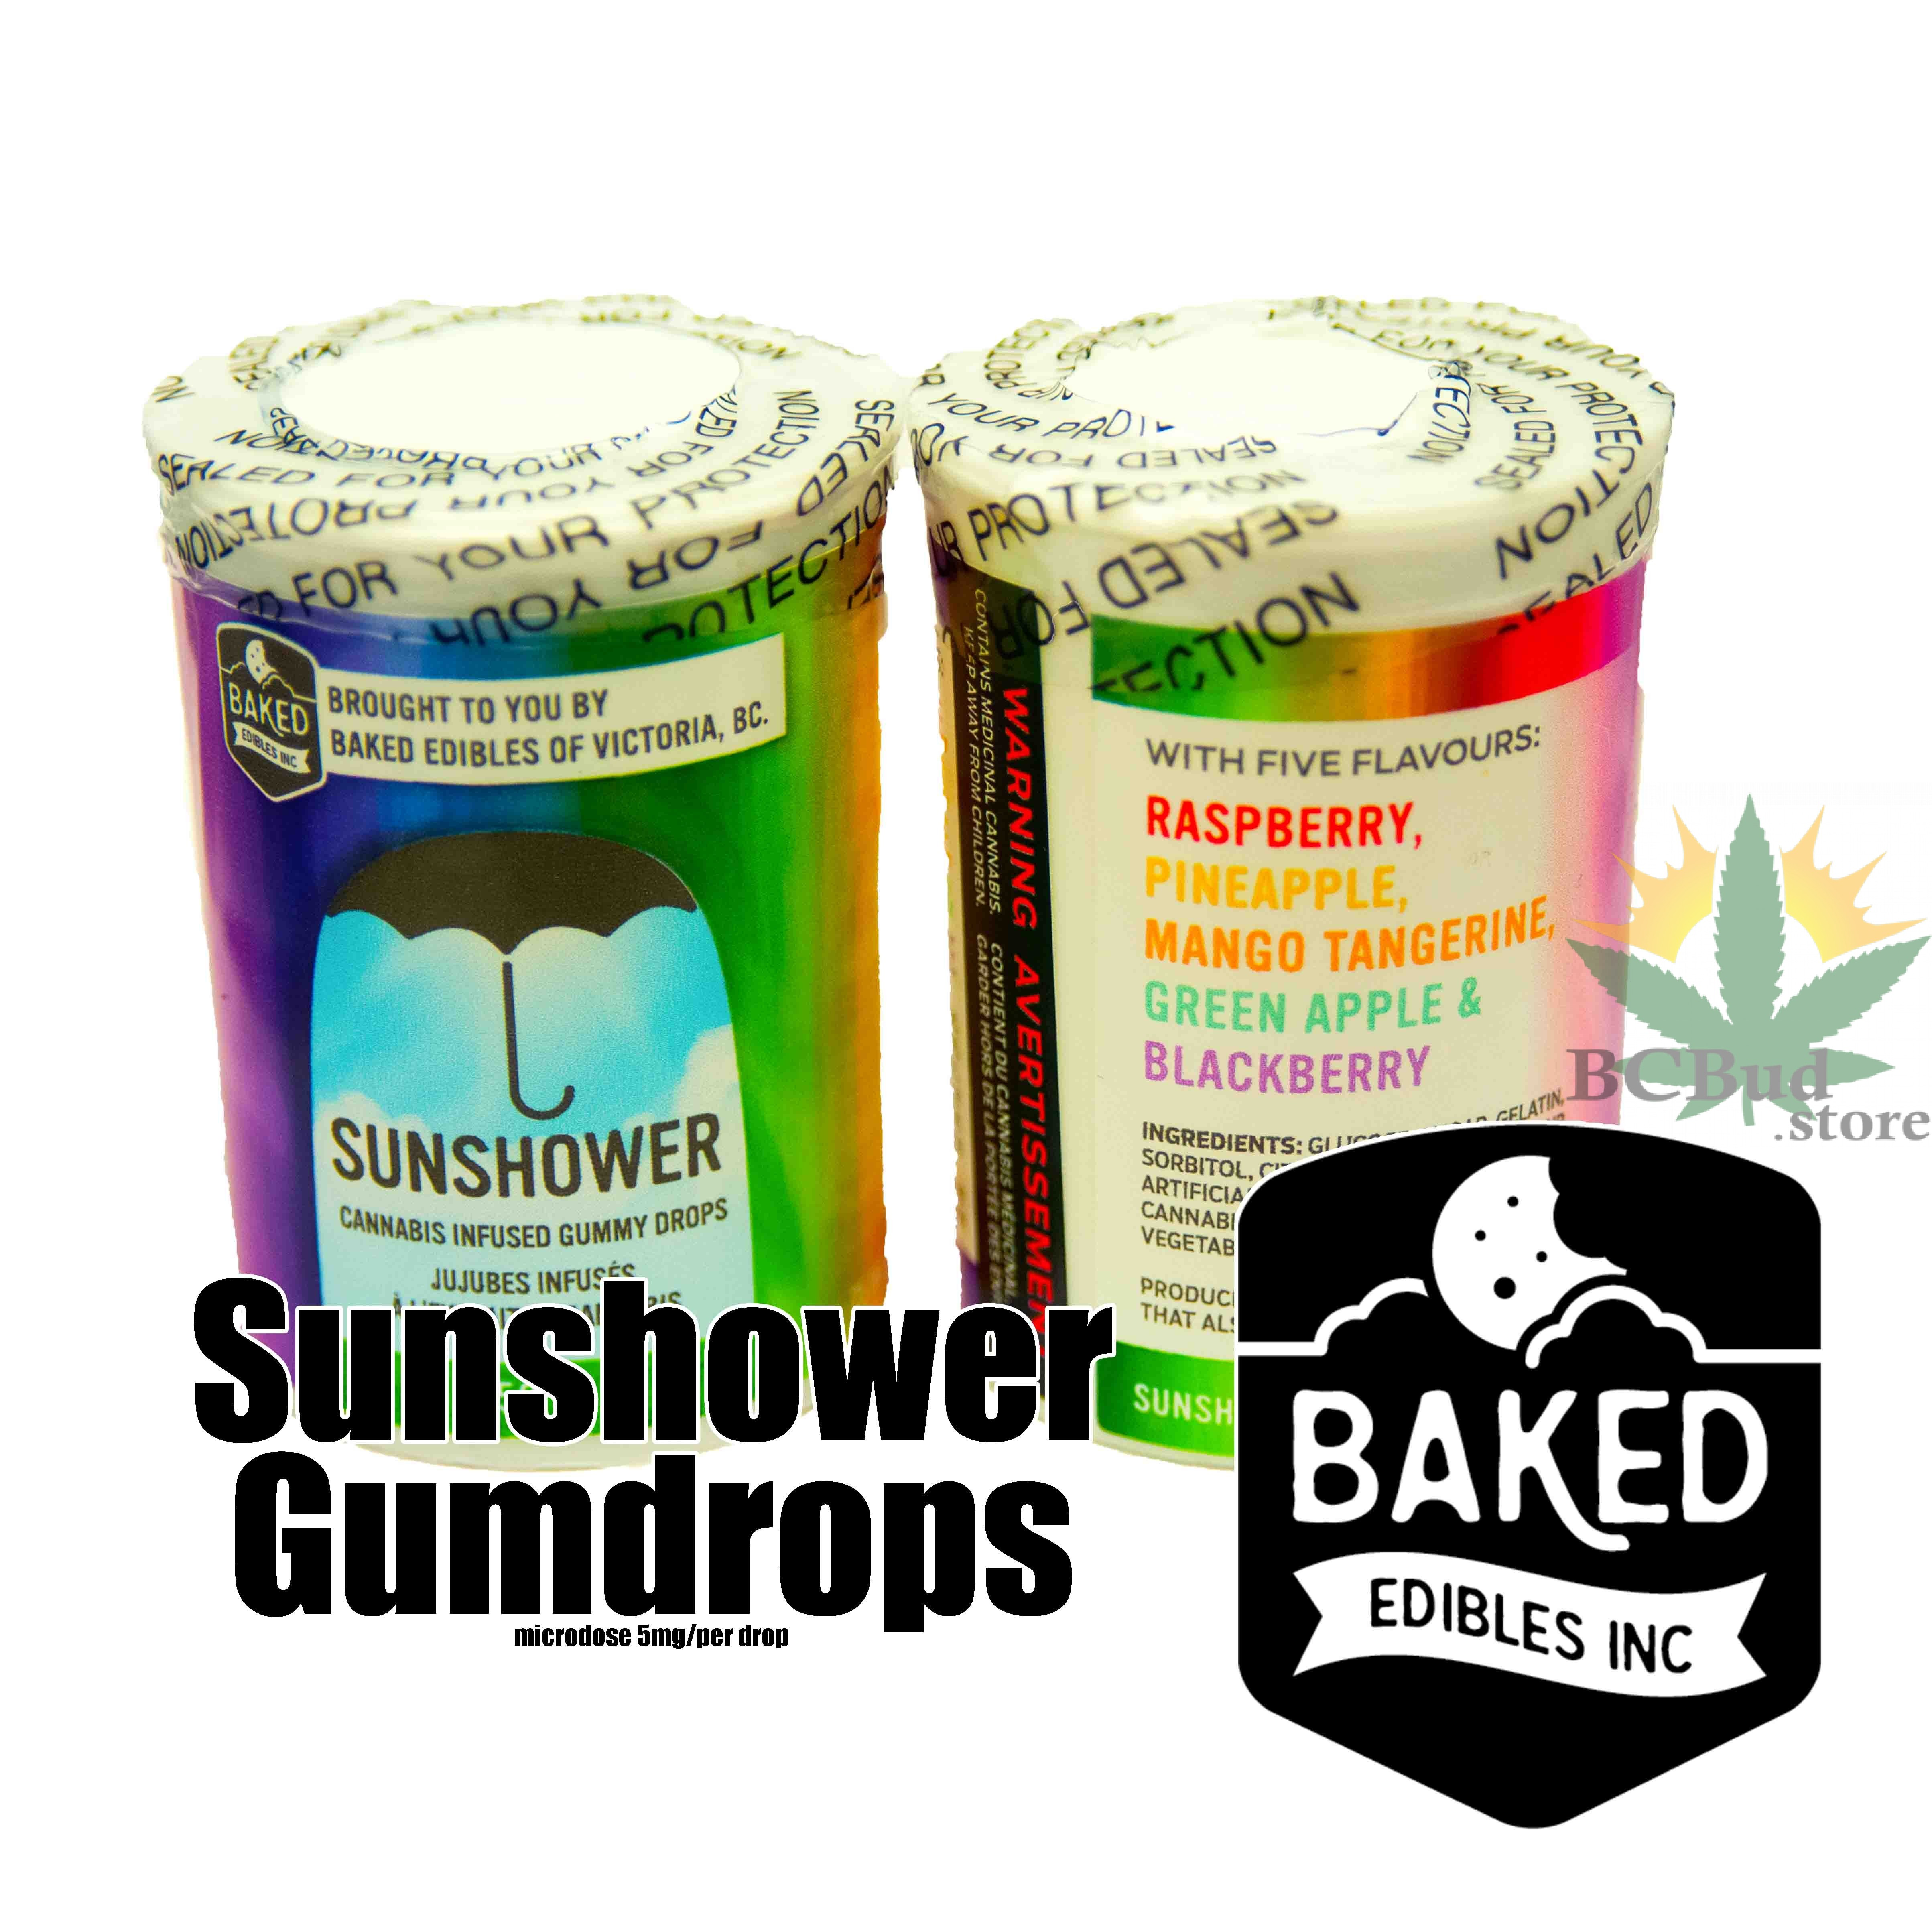 Sunshower Gumdrops Baked Edibles Inc. by BC Bud Store - Image © 2018 BC Bud Store. All Rights Reserved.